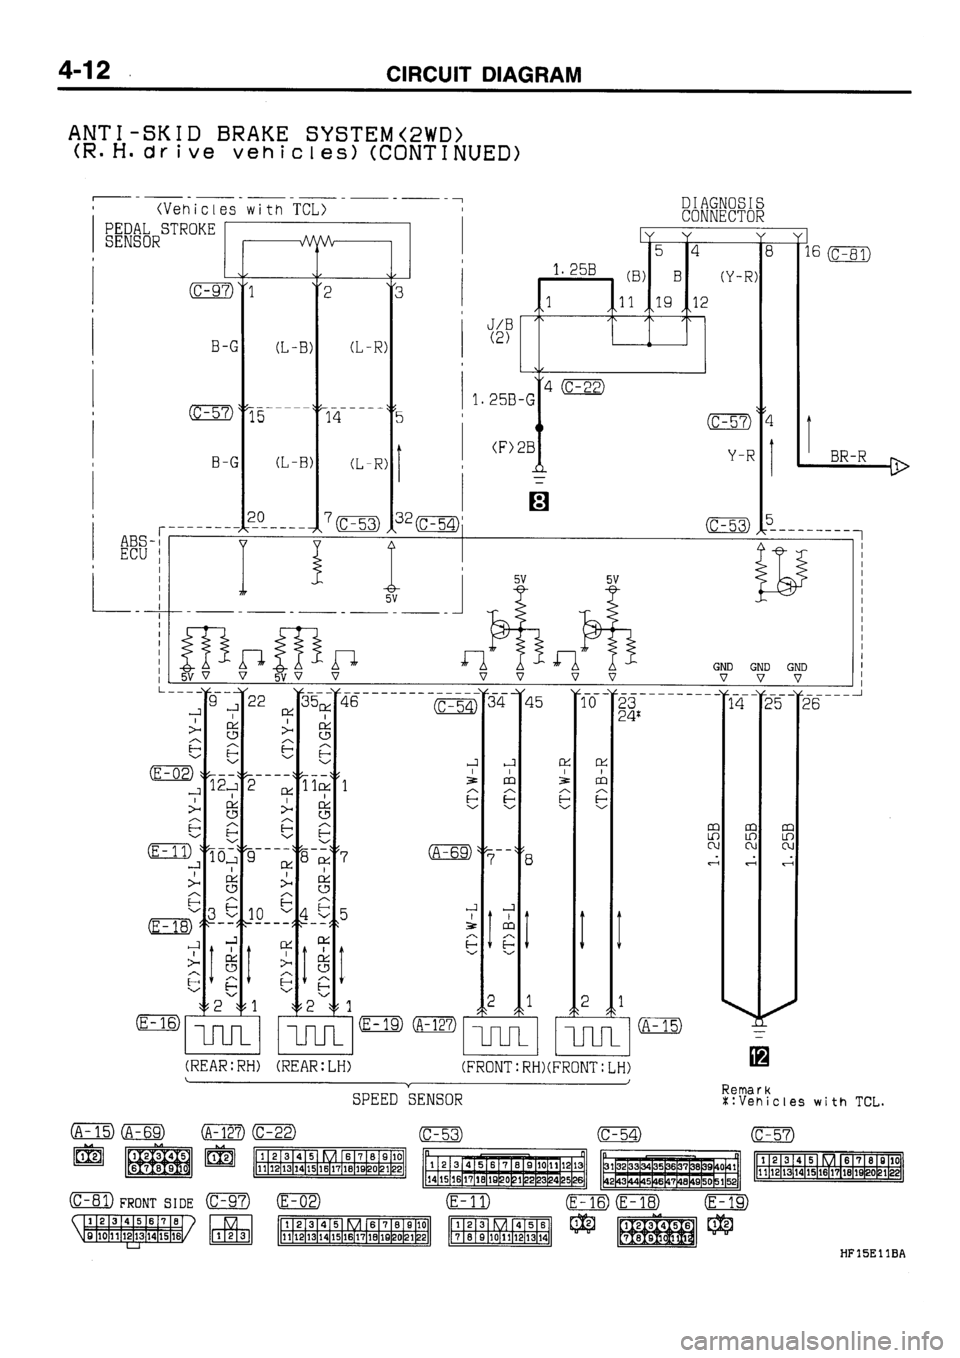 MITSUBISHI GALANT 1995 7.G Electrical Wiring Diagram Owner